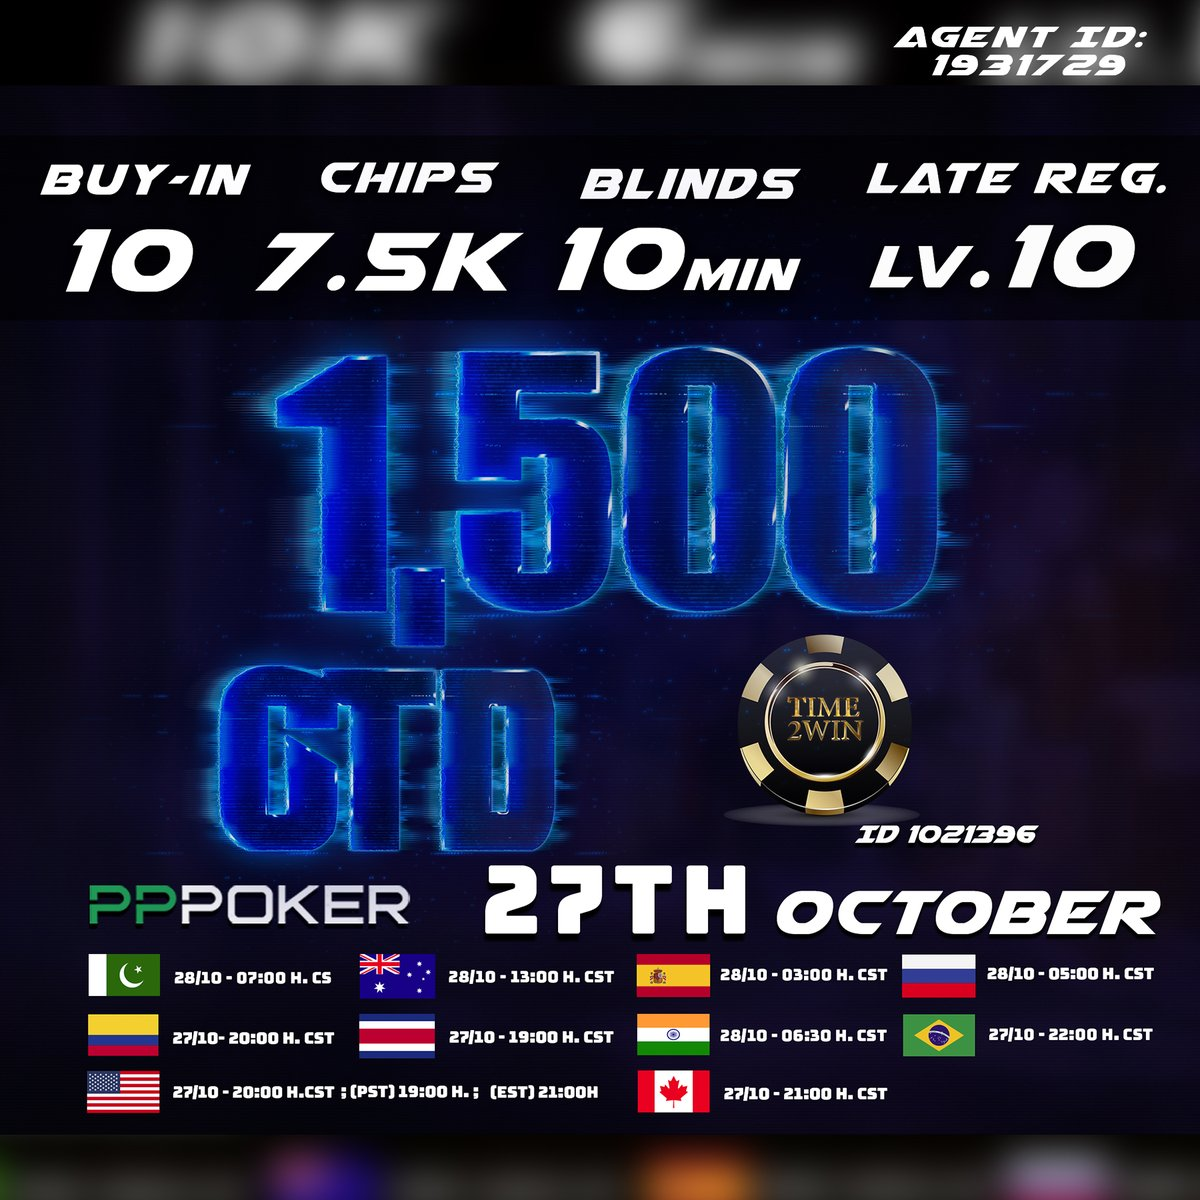 ♠♥♣♦https://t.co/1Ro9IrNBJD♠♥♣♦ 👉🏻Time2win (ID 1021396) 👉🏻Agent ID 1931729  👉🏻RAKEBACK 30% 💸➕¡BONO DE DEPOSITO HASTA 15%!   📢1,500 USD GTD 🔥 Buy-in:10💸 Start.Chips: 7.500 Late reg. up to level 10  #pppoker #easypppoker #pokerface  #pokeronline #poker #Pokerchips https://t.co/wRgu6Sy5T8